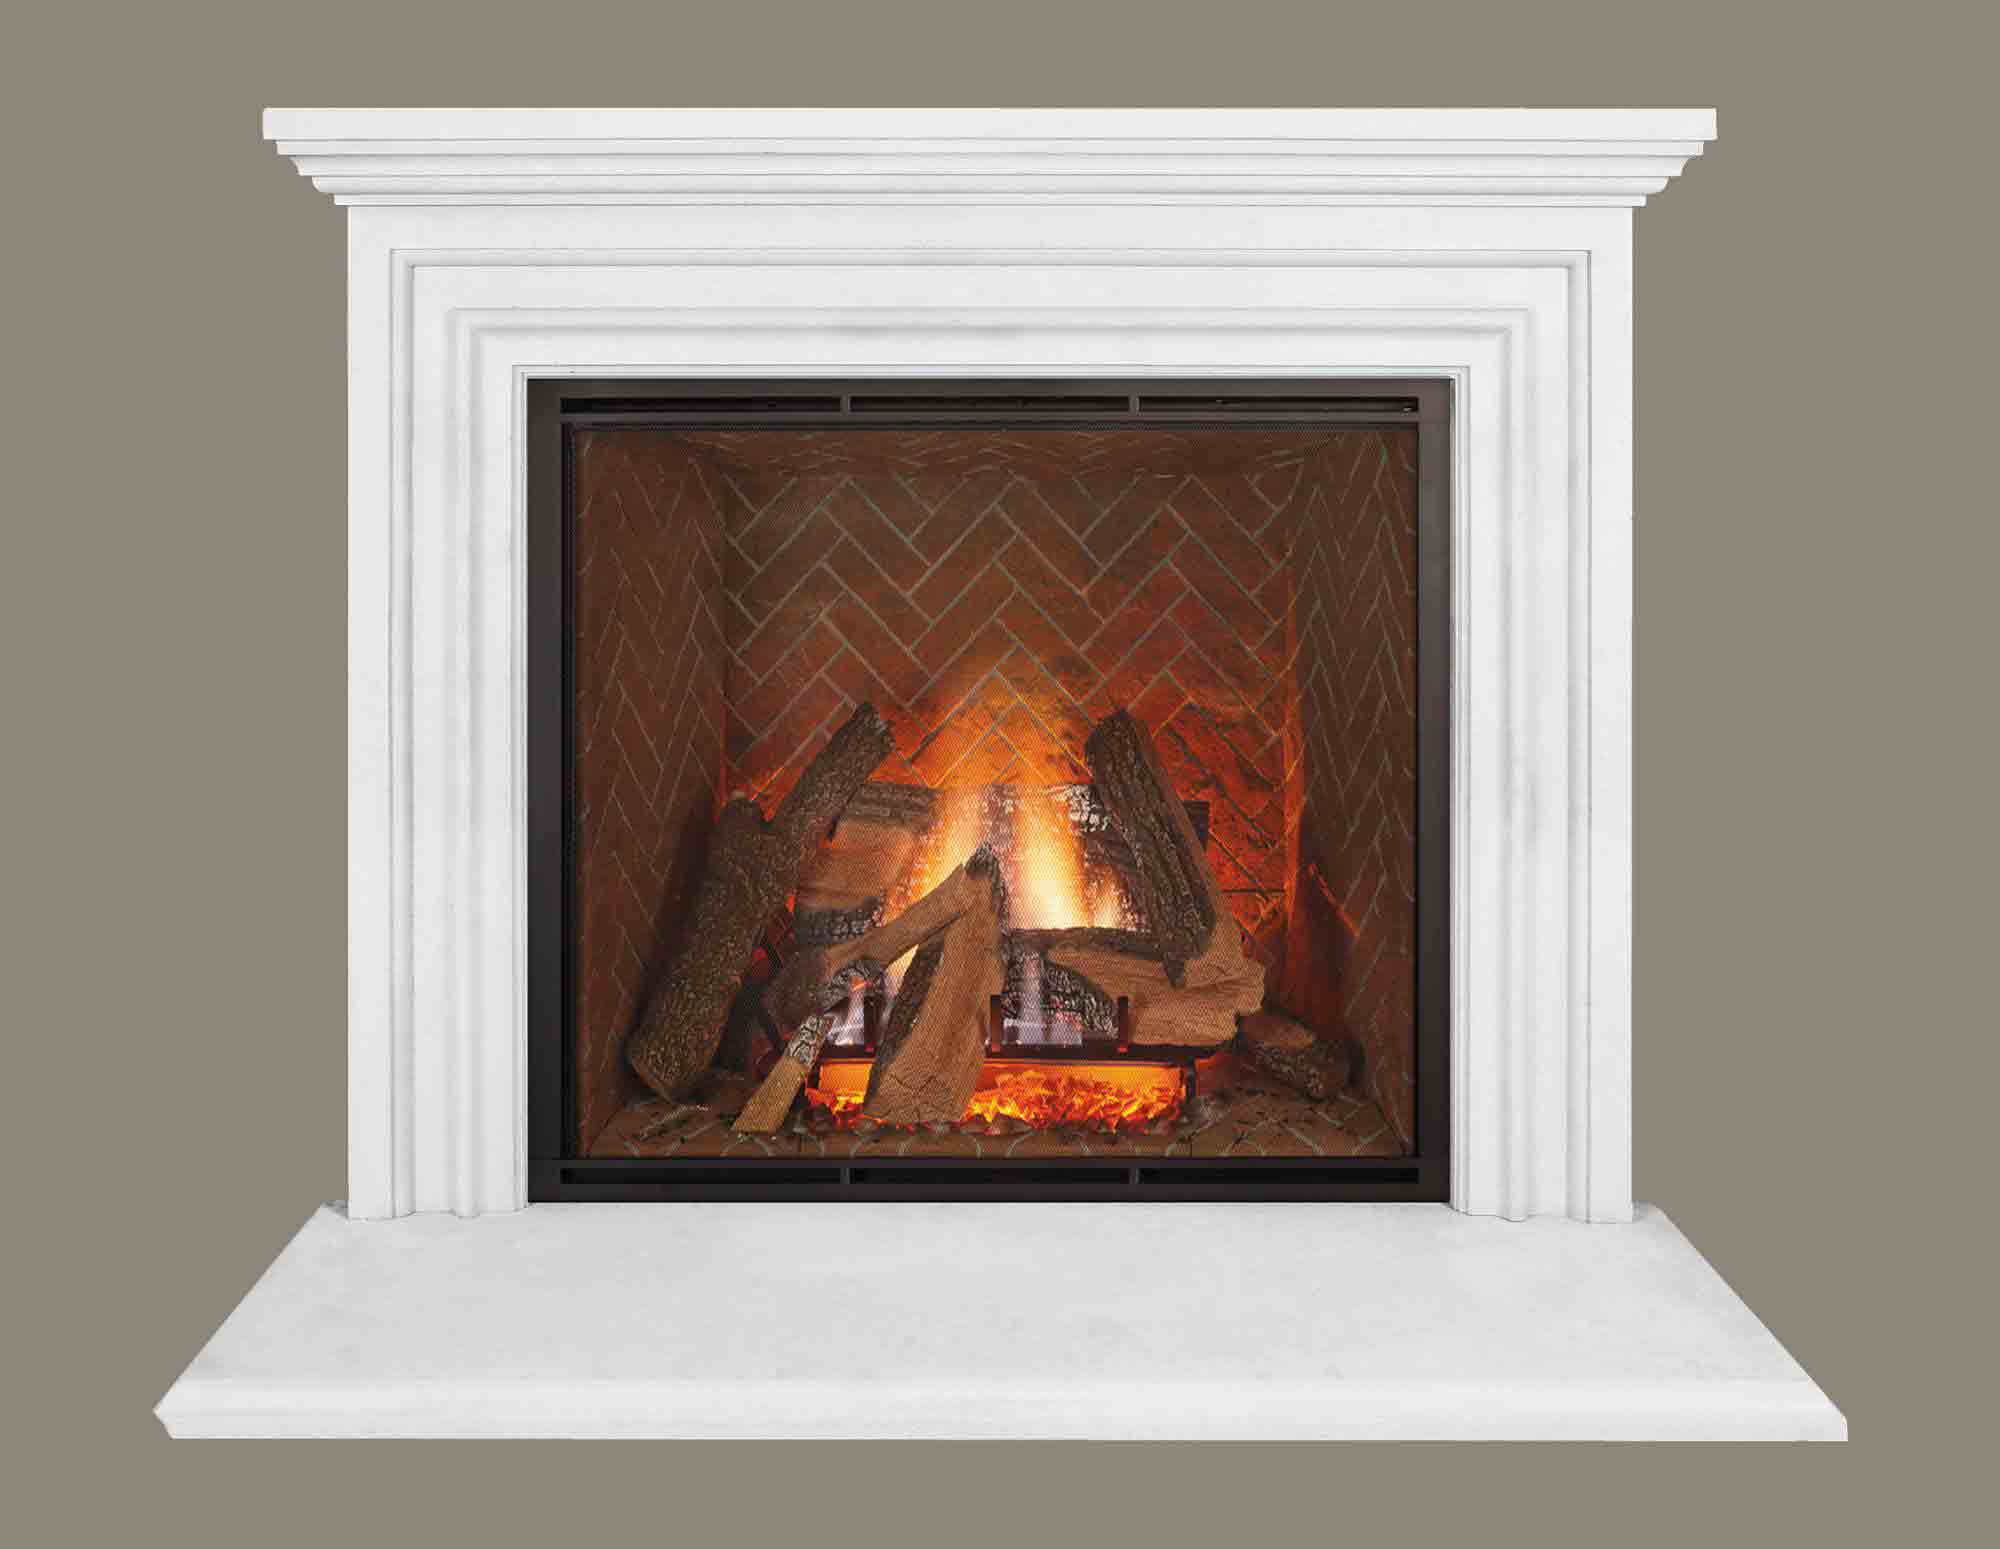 Fireplace calmantel